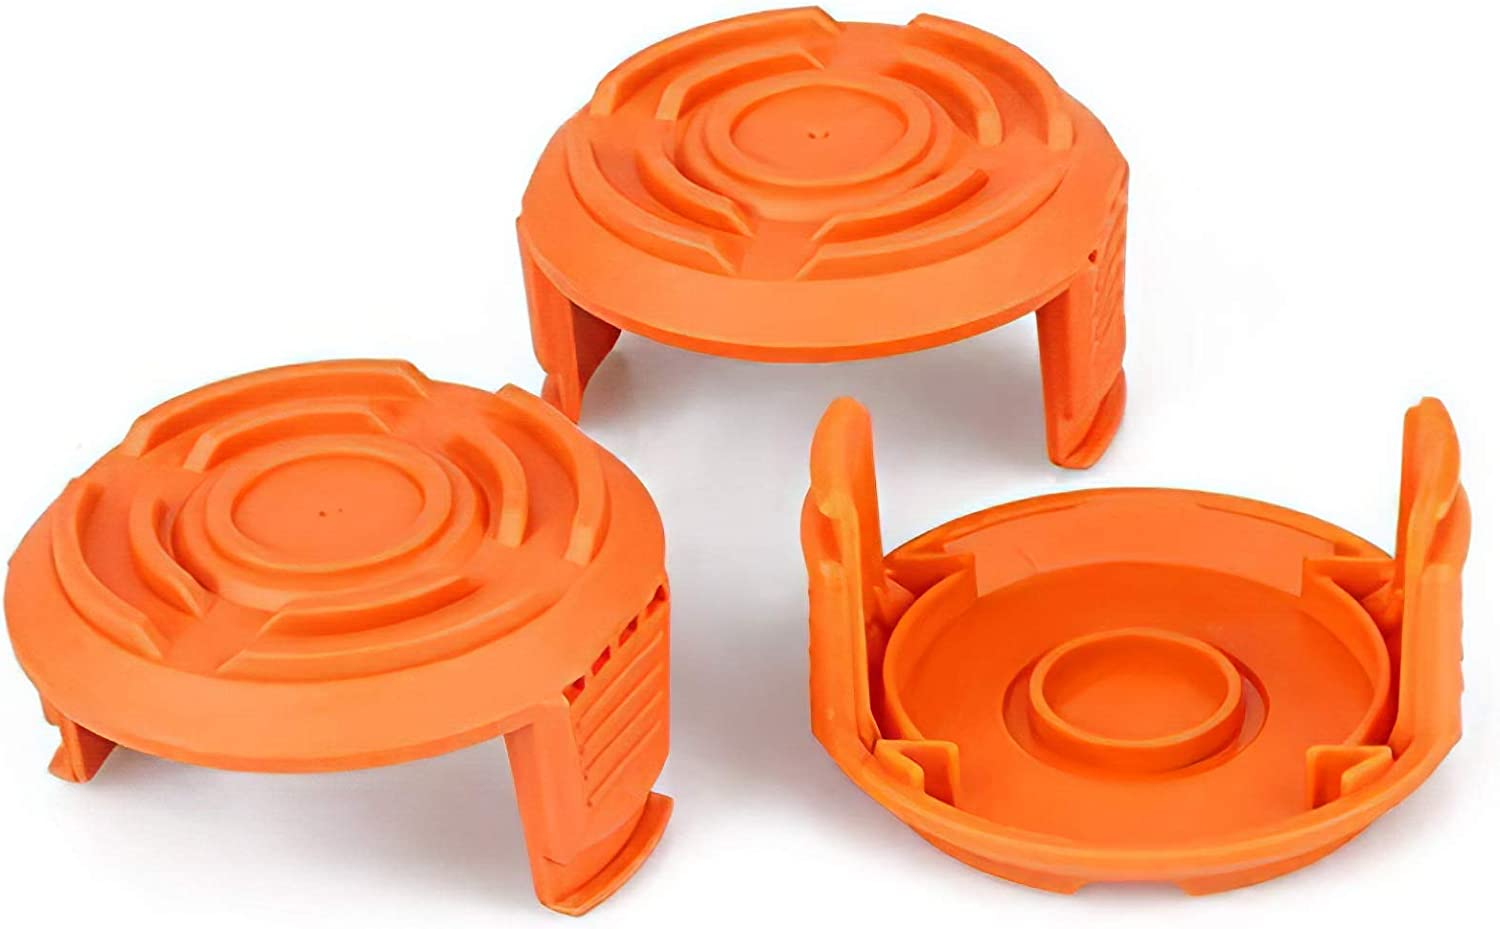 YWTESCH Trimmer Replacement Spool Cap Covers for Worx (3 Pack) : Garden & Outdoor